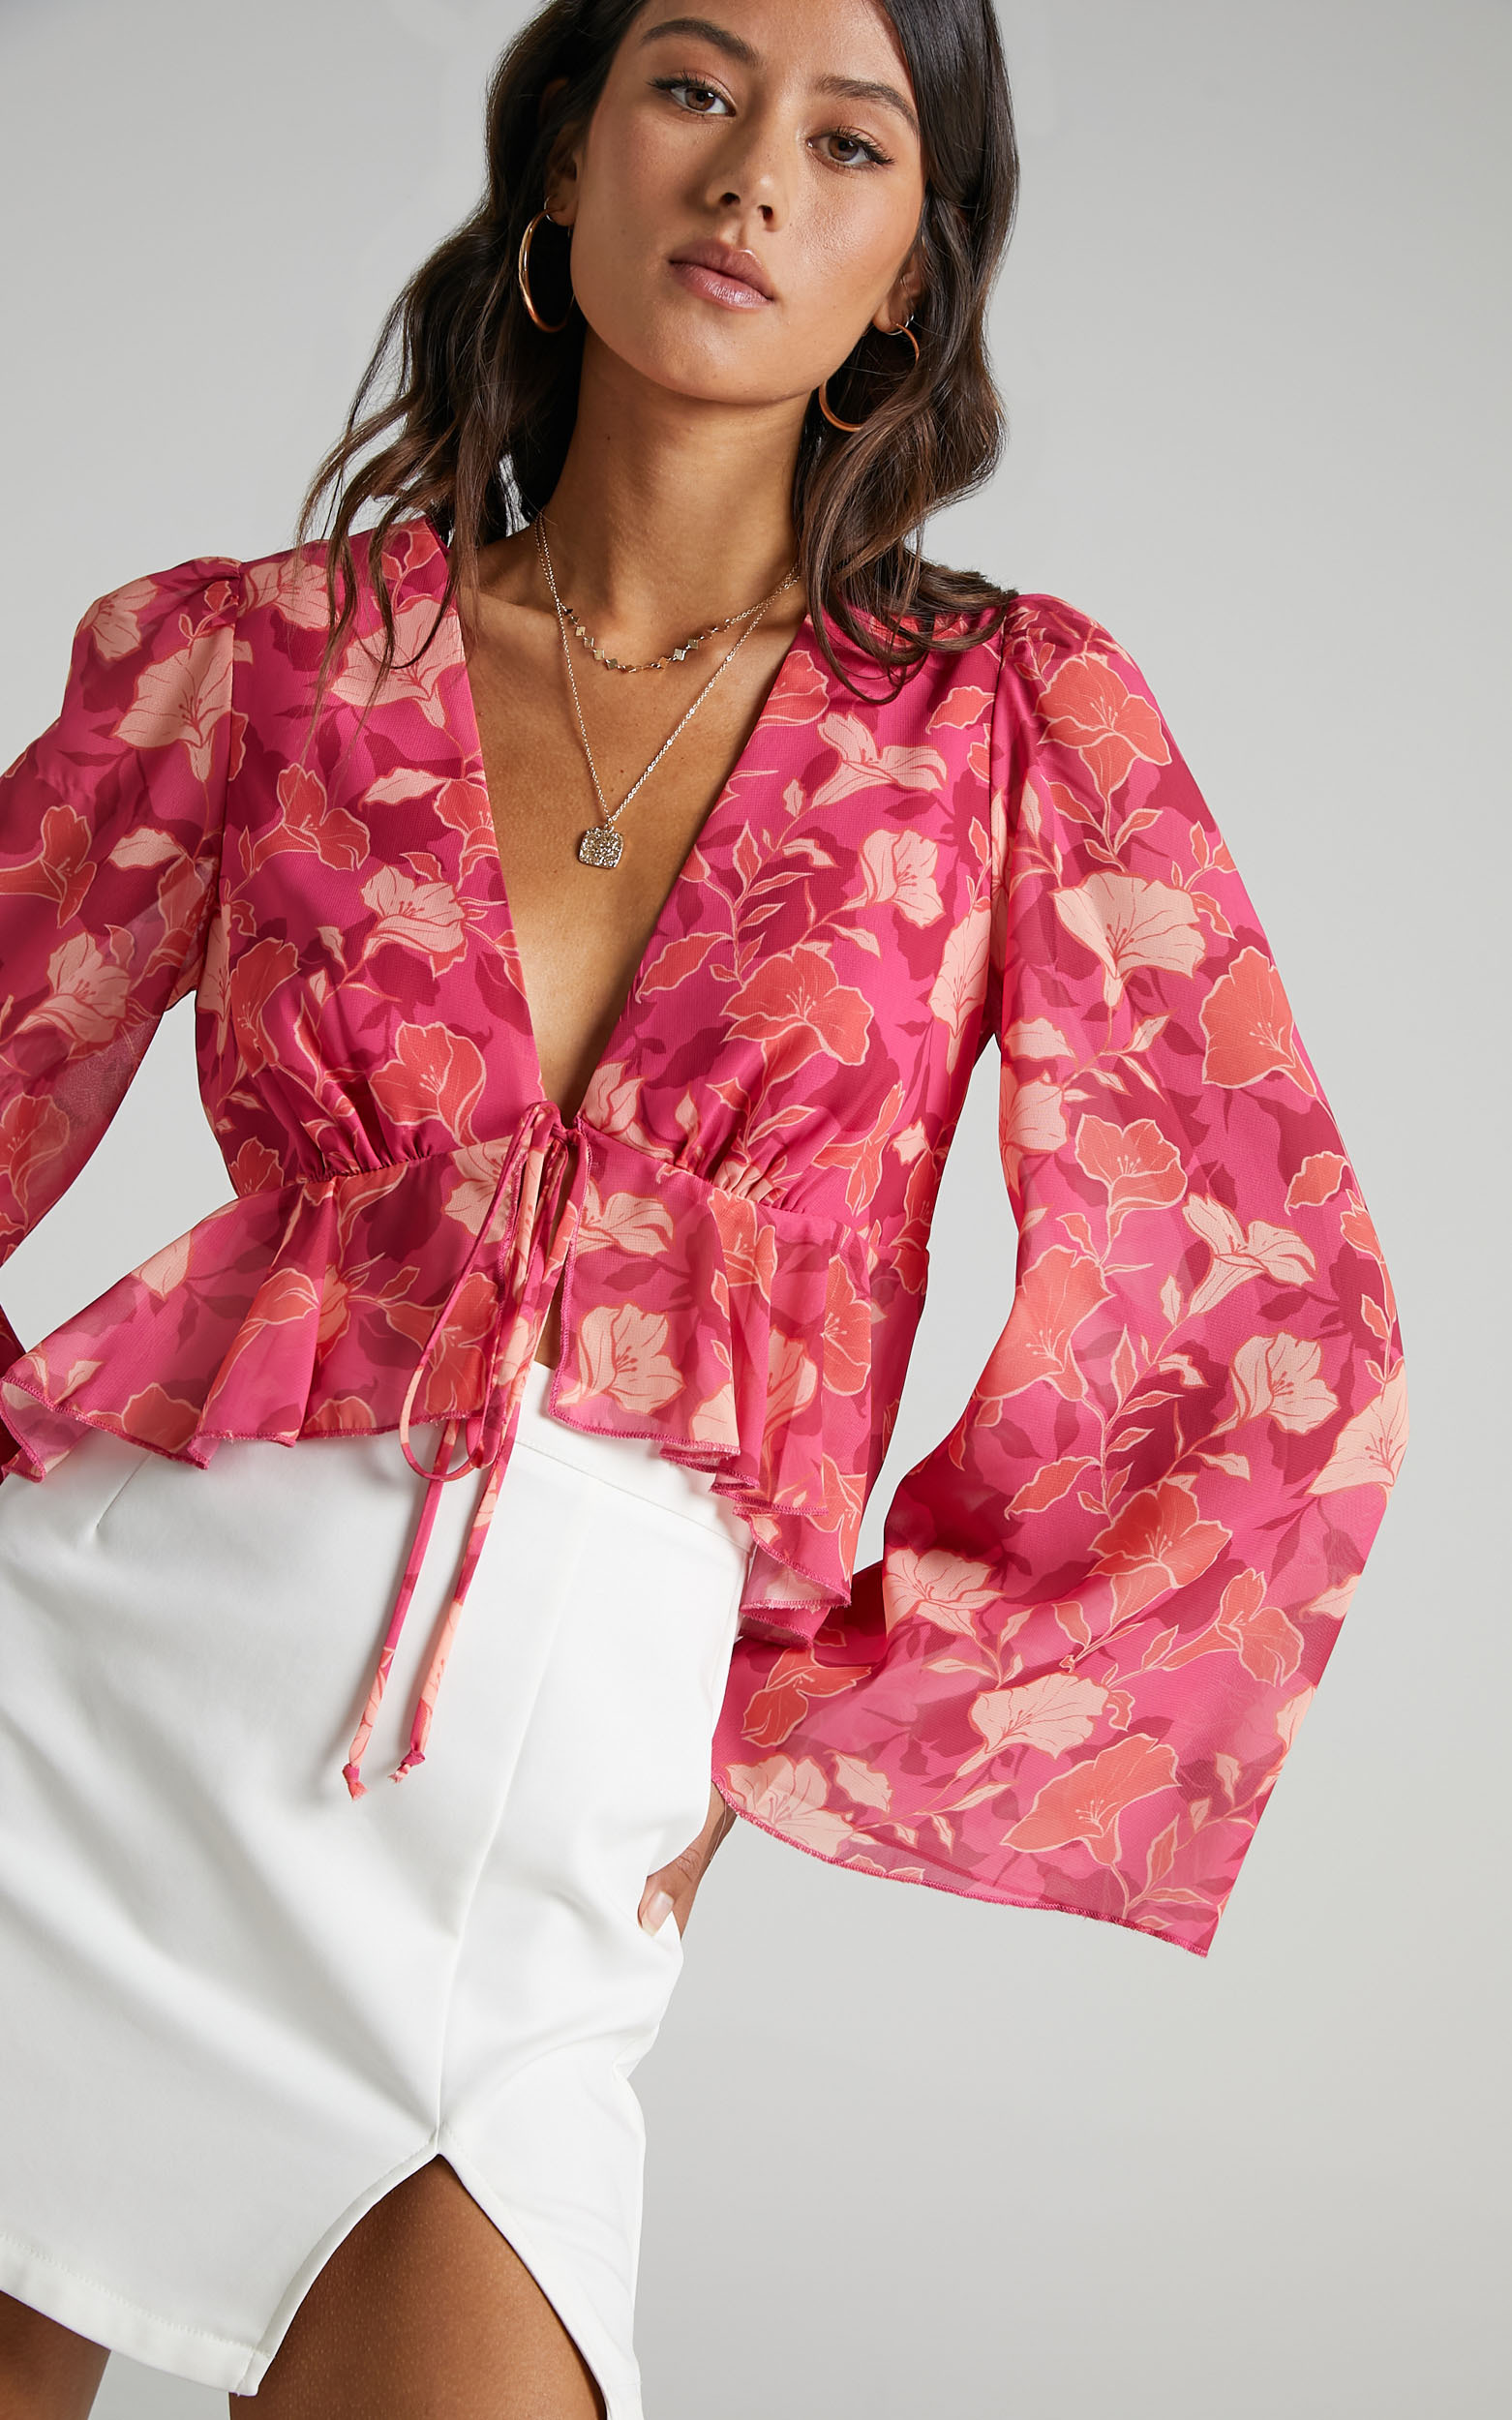 Dance It Out Top in berry floral - 20 (XXXXL), PNK29, hi-res image number null